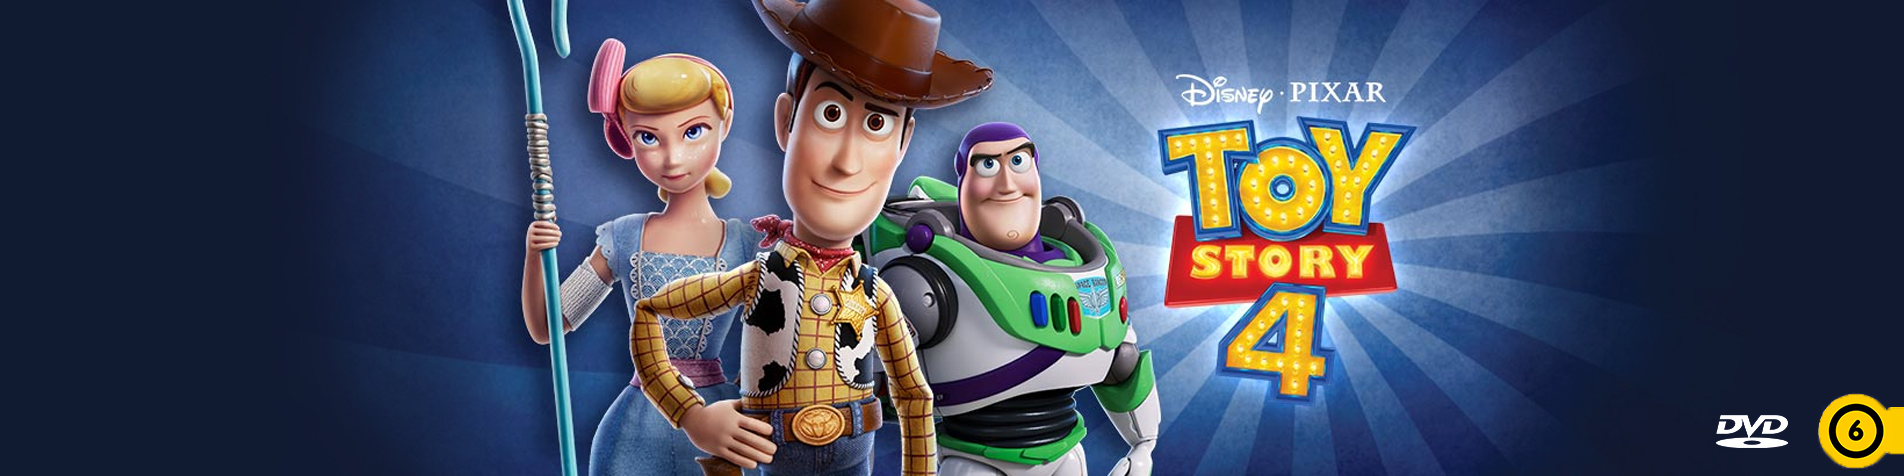 Toystory4 - Bluray